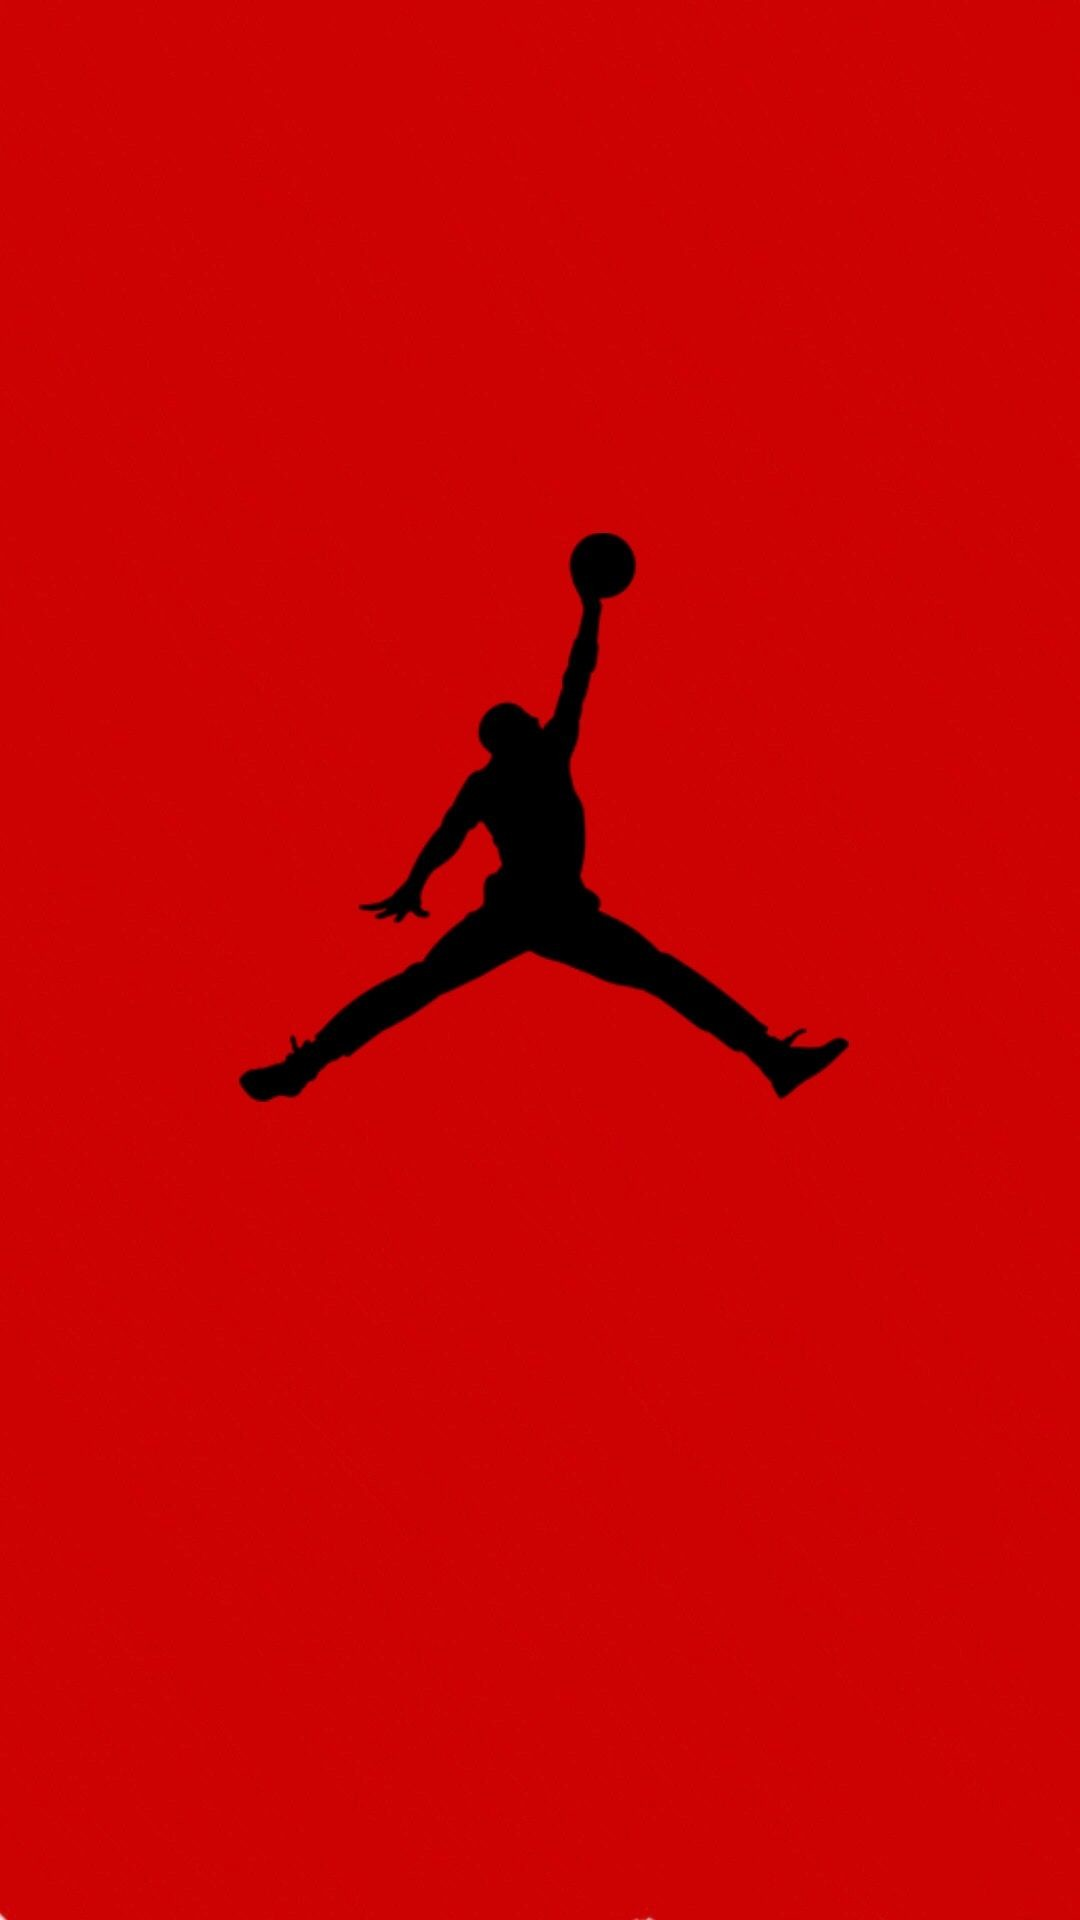 Res: 1080x1920, Air jordan logo iphone background